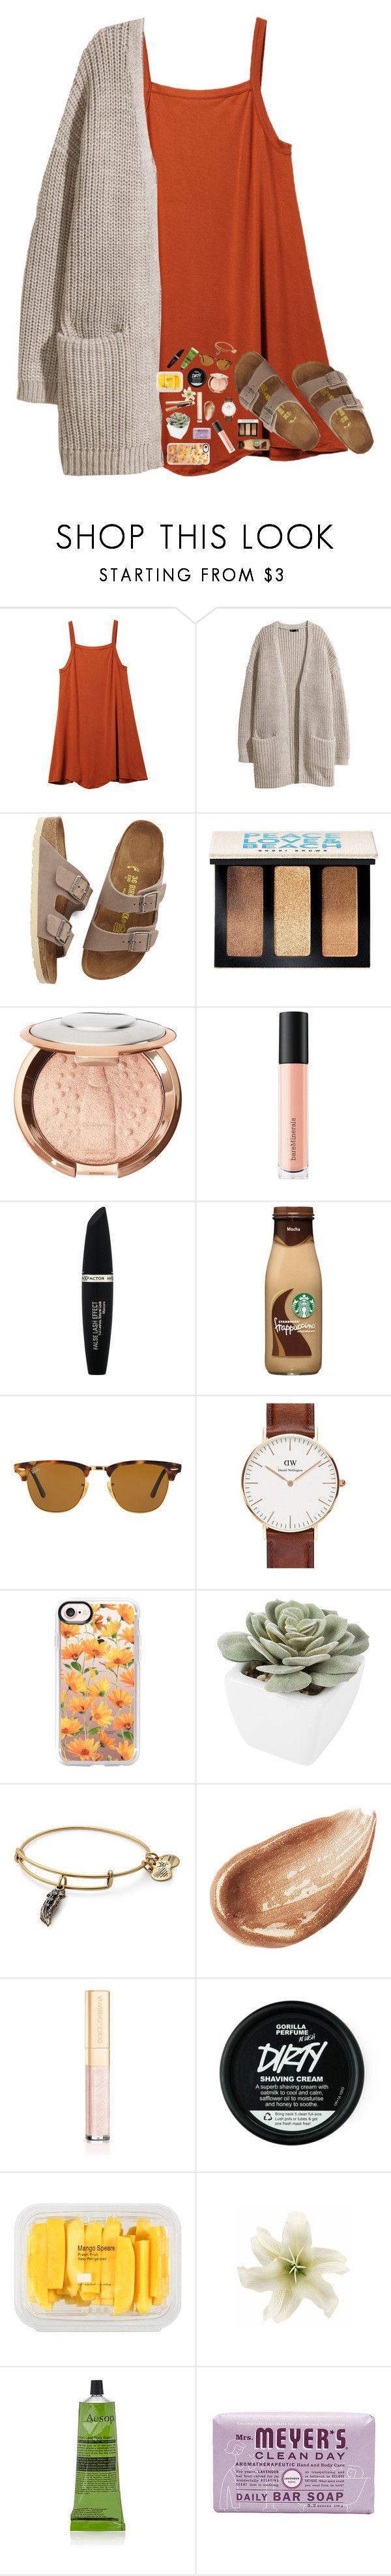 """Going to see the new Star Wars movie this afternoon!!"" by kat-attack ❤ liked on Polyvore featuring RVCA, H&M, Birkenstock, Bobbi Brown Cosmetics, Sephora Collection, Bare Escentuals, Max Factor, Ray-Ban, Daniel Wellington and Casetify"